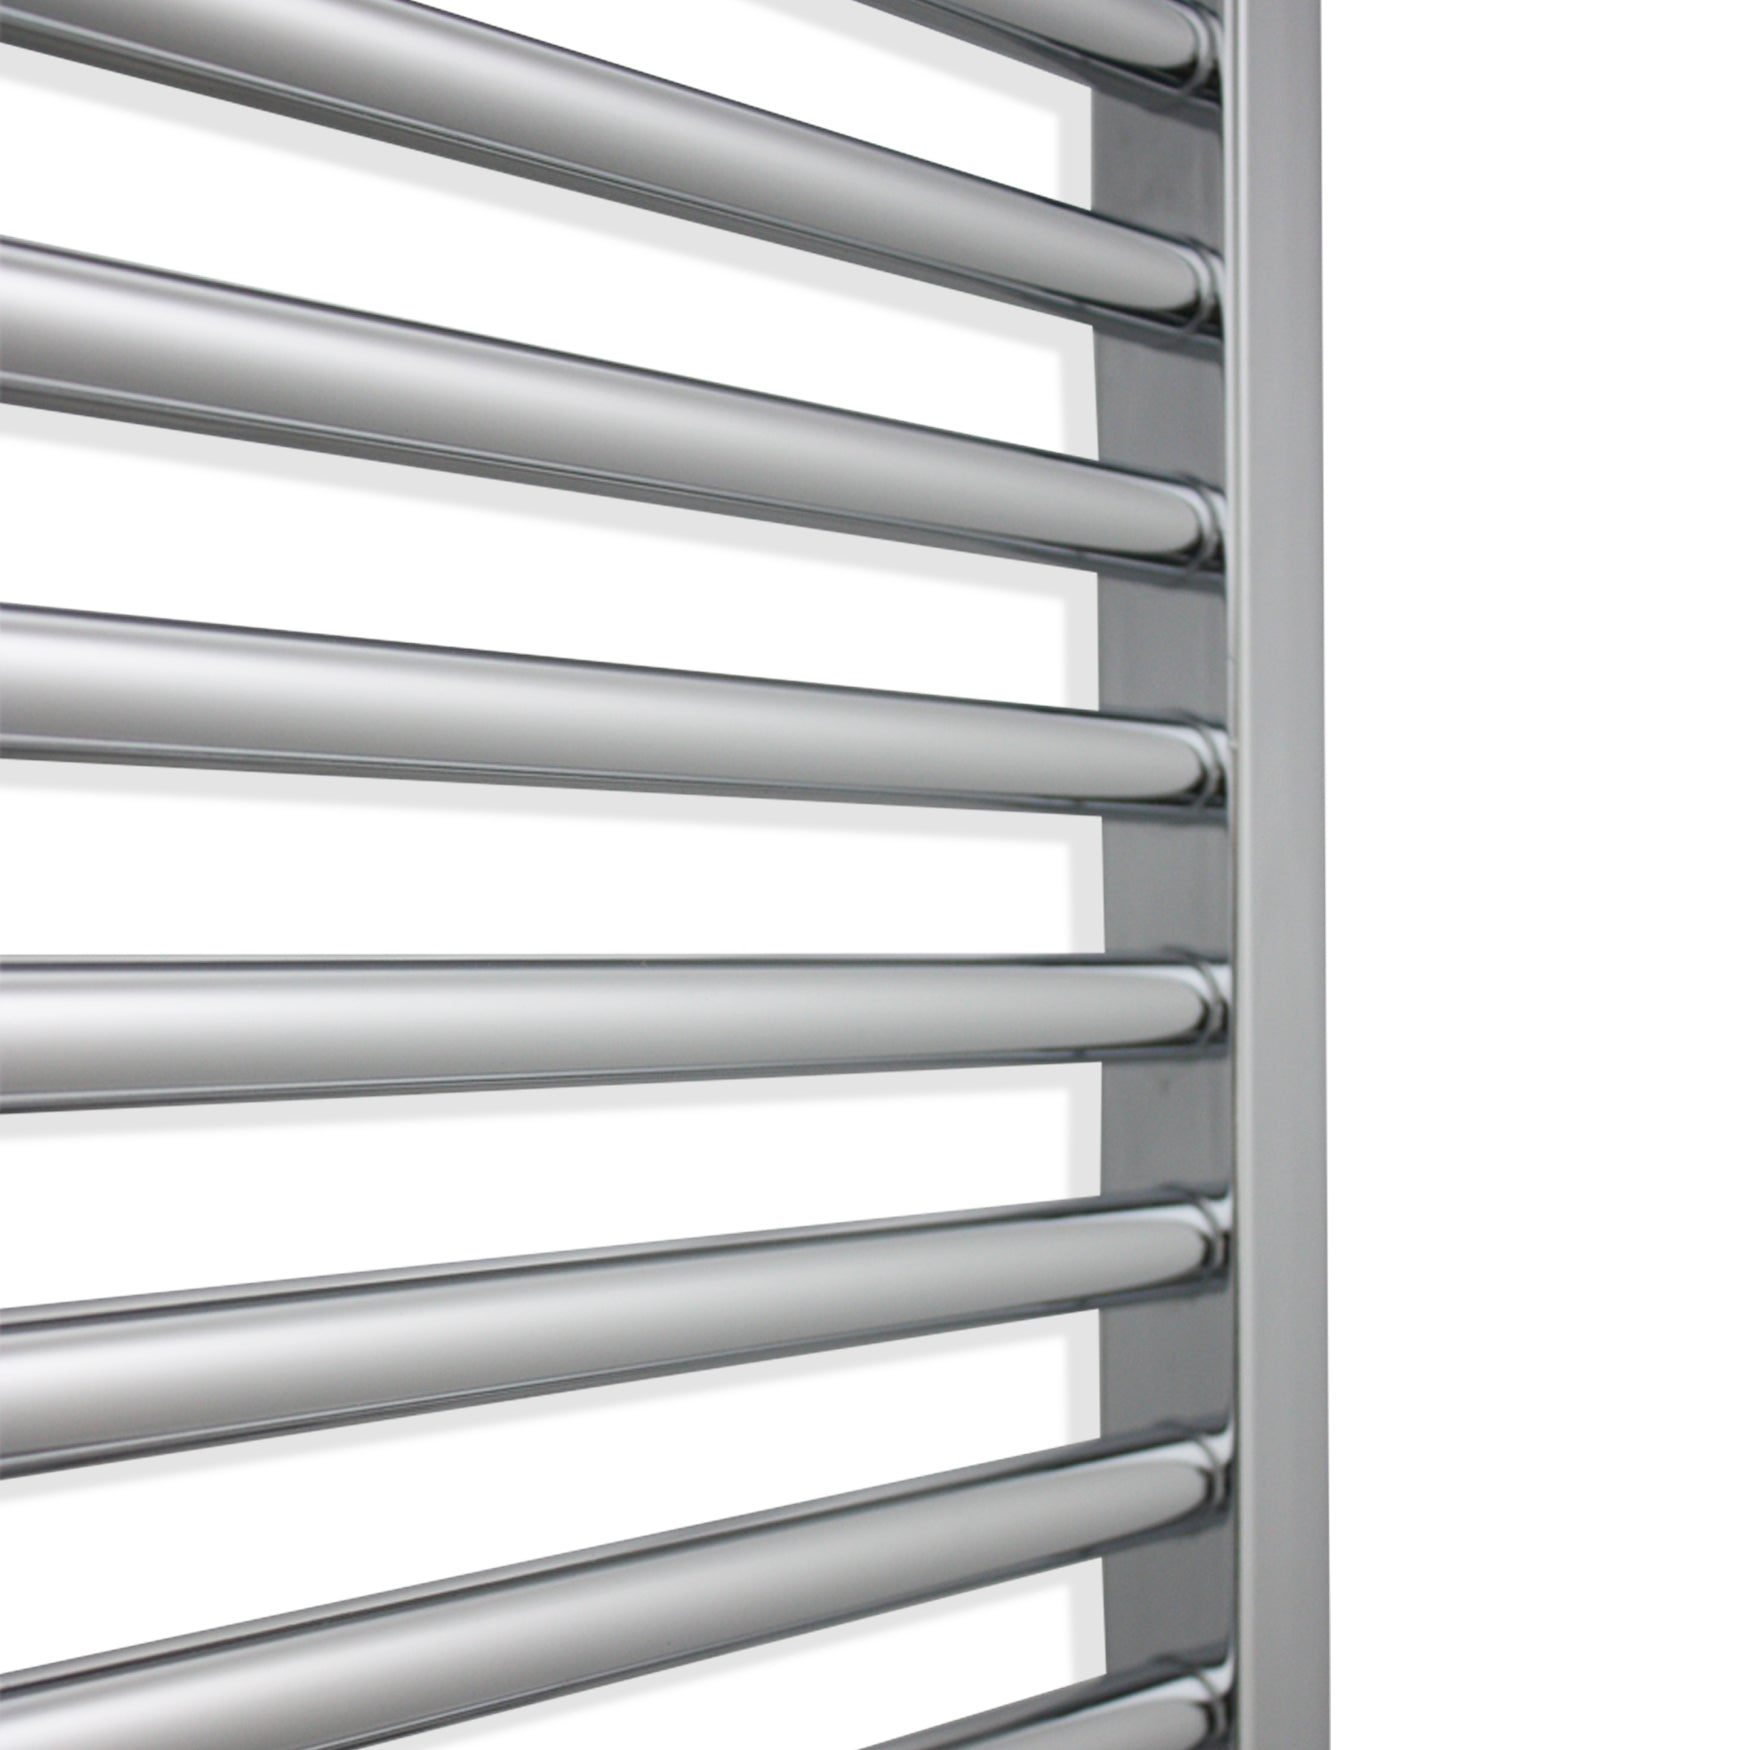 500mm Wide 1800mm High Curved Chrome Heated Towel Rail Radiator HTR